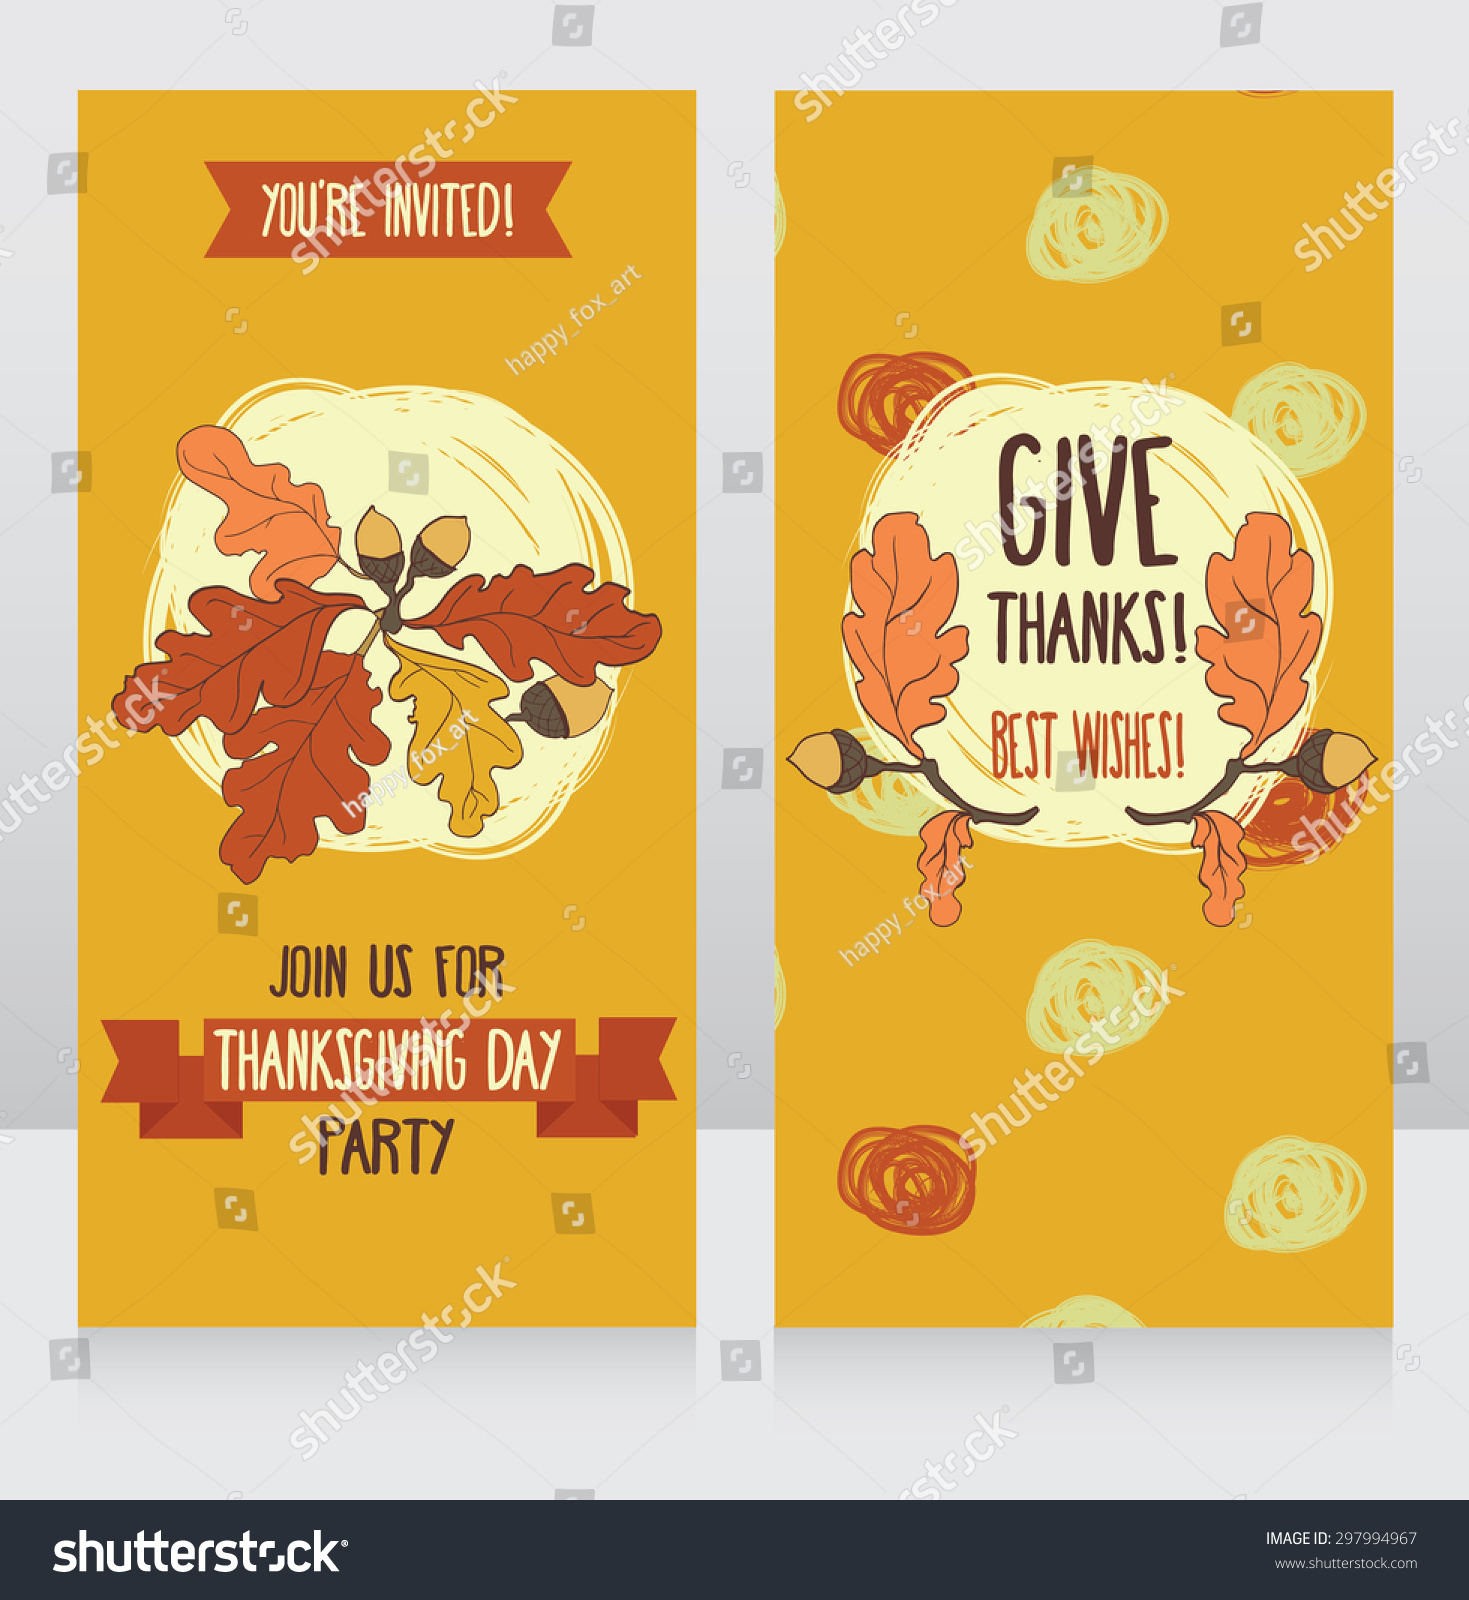 Greeting cards thanksgiving day cute party stock vector 297994967 greeting cards for thanksgiving day cute party invitations vector illustration kristyandbryce Images